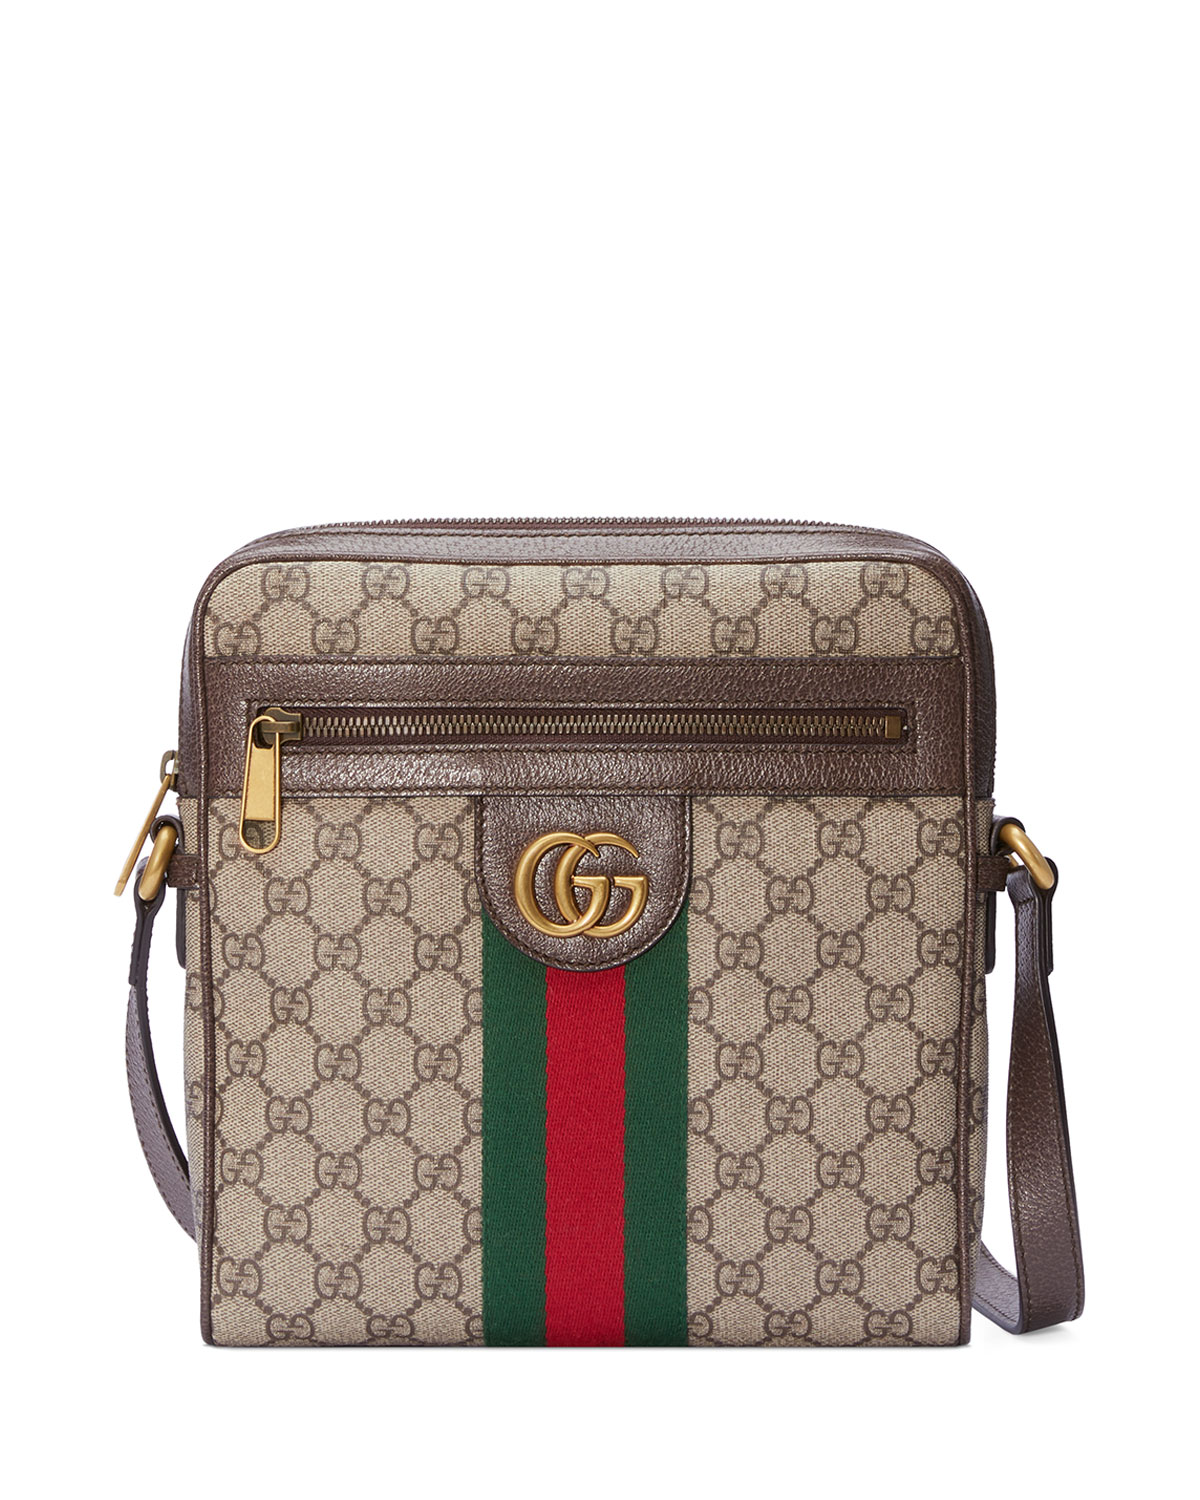 1b658e785 Gucci Ophidia GG Supreme Canvas Messenger Bag | Neiman Marcus